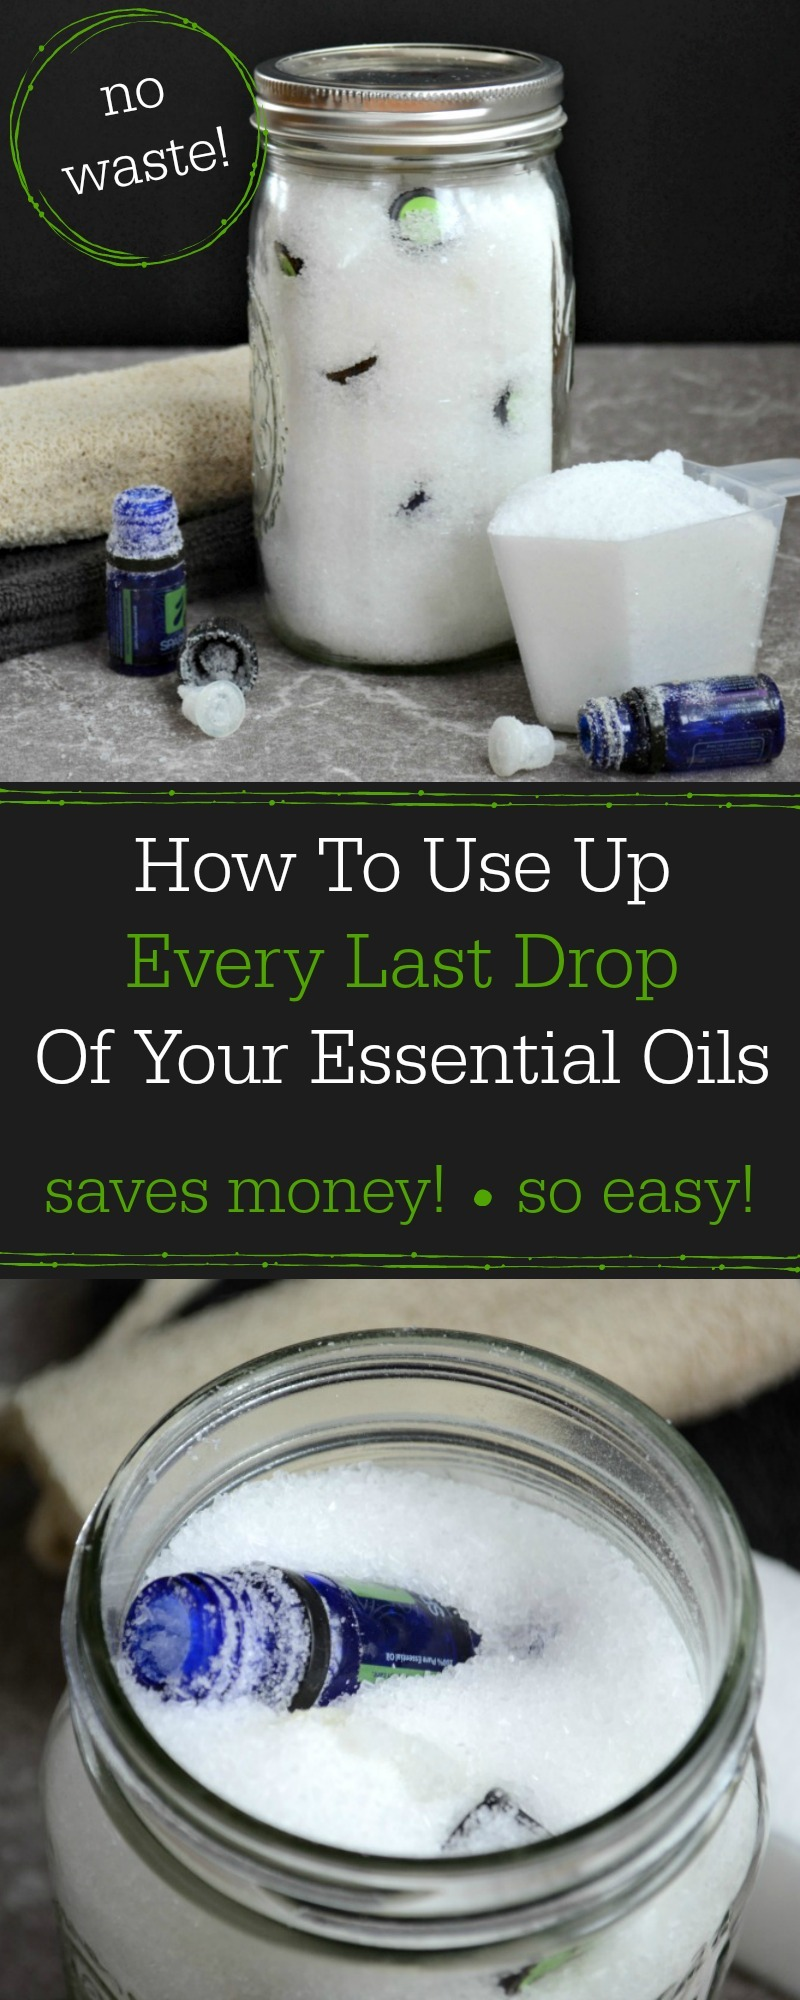 How To Use Up Every Last Drop Of Your Essential Oils